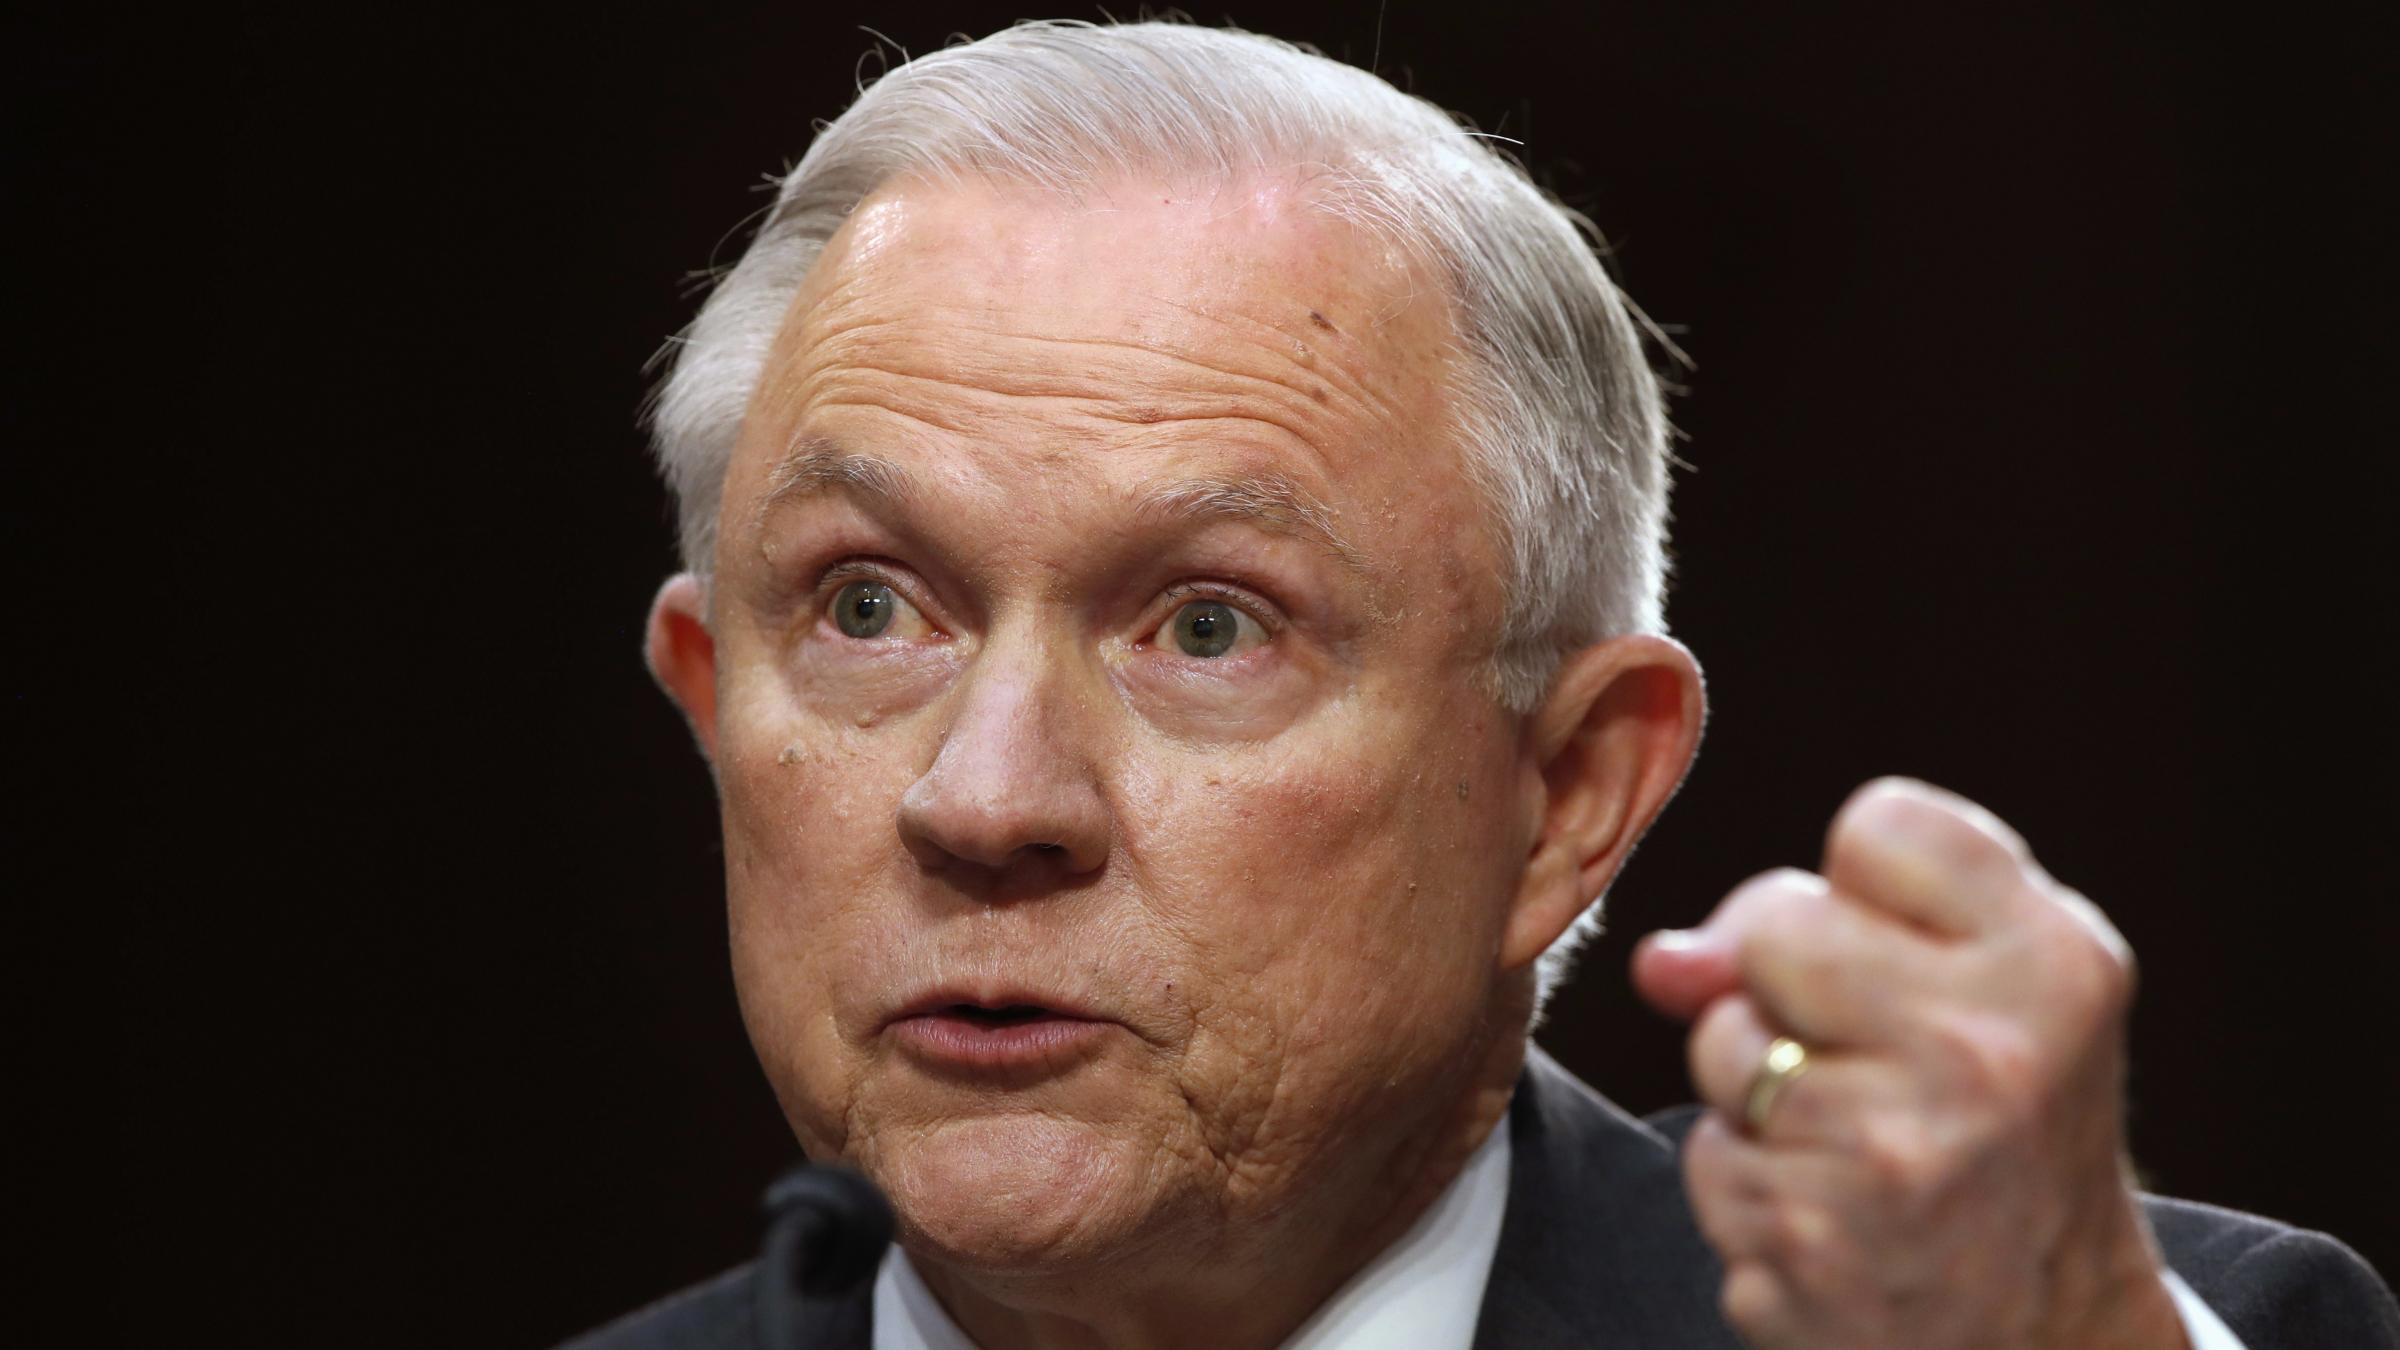 US Attorney General Jeff Sessions calls allegations of collusion with Russia appalling